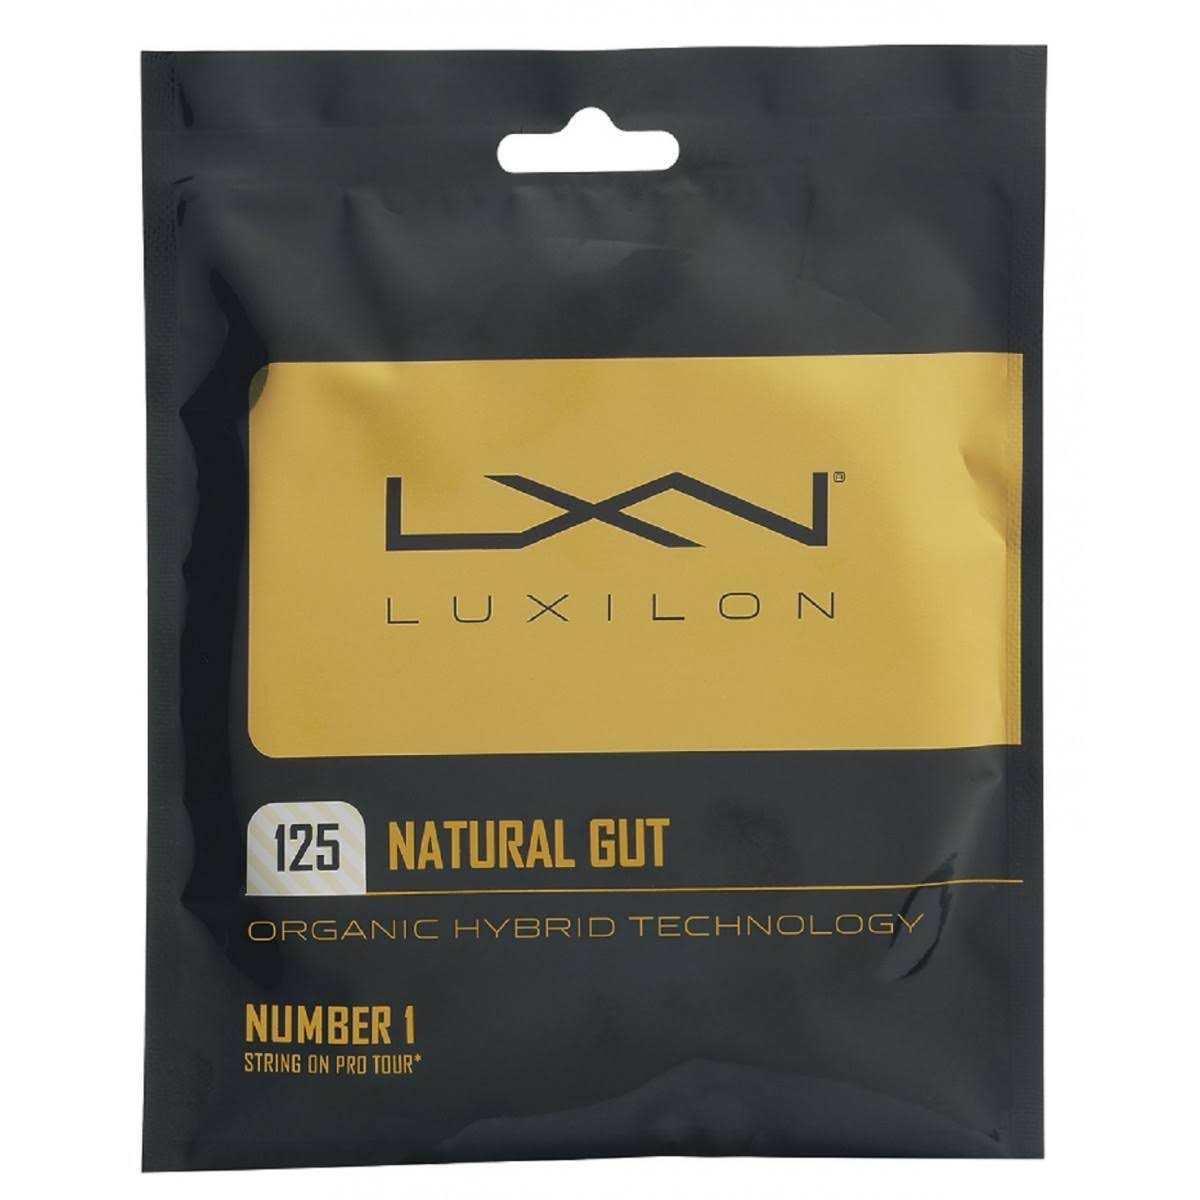 Luxilon Natural Gut Tennis String Set - 1.25mm